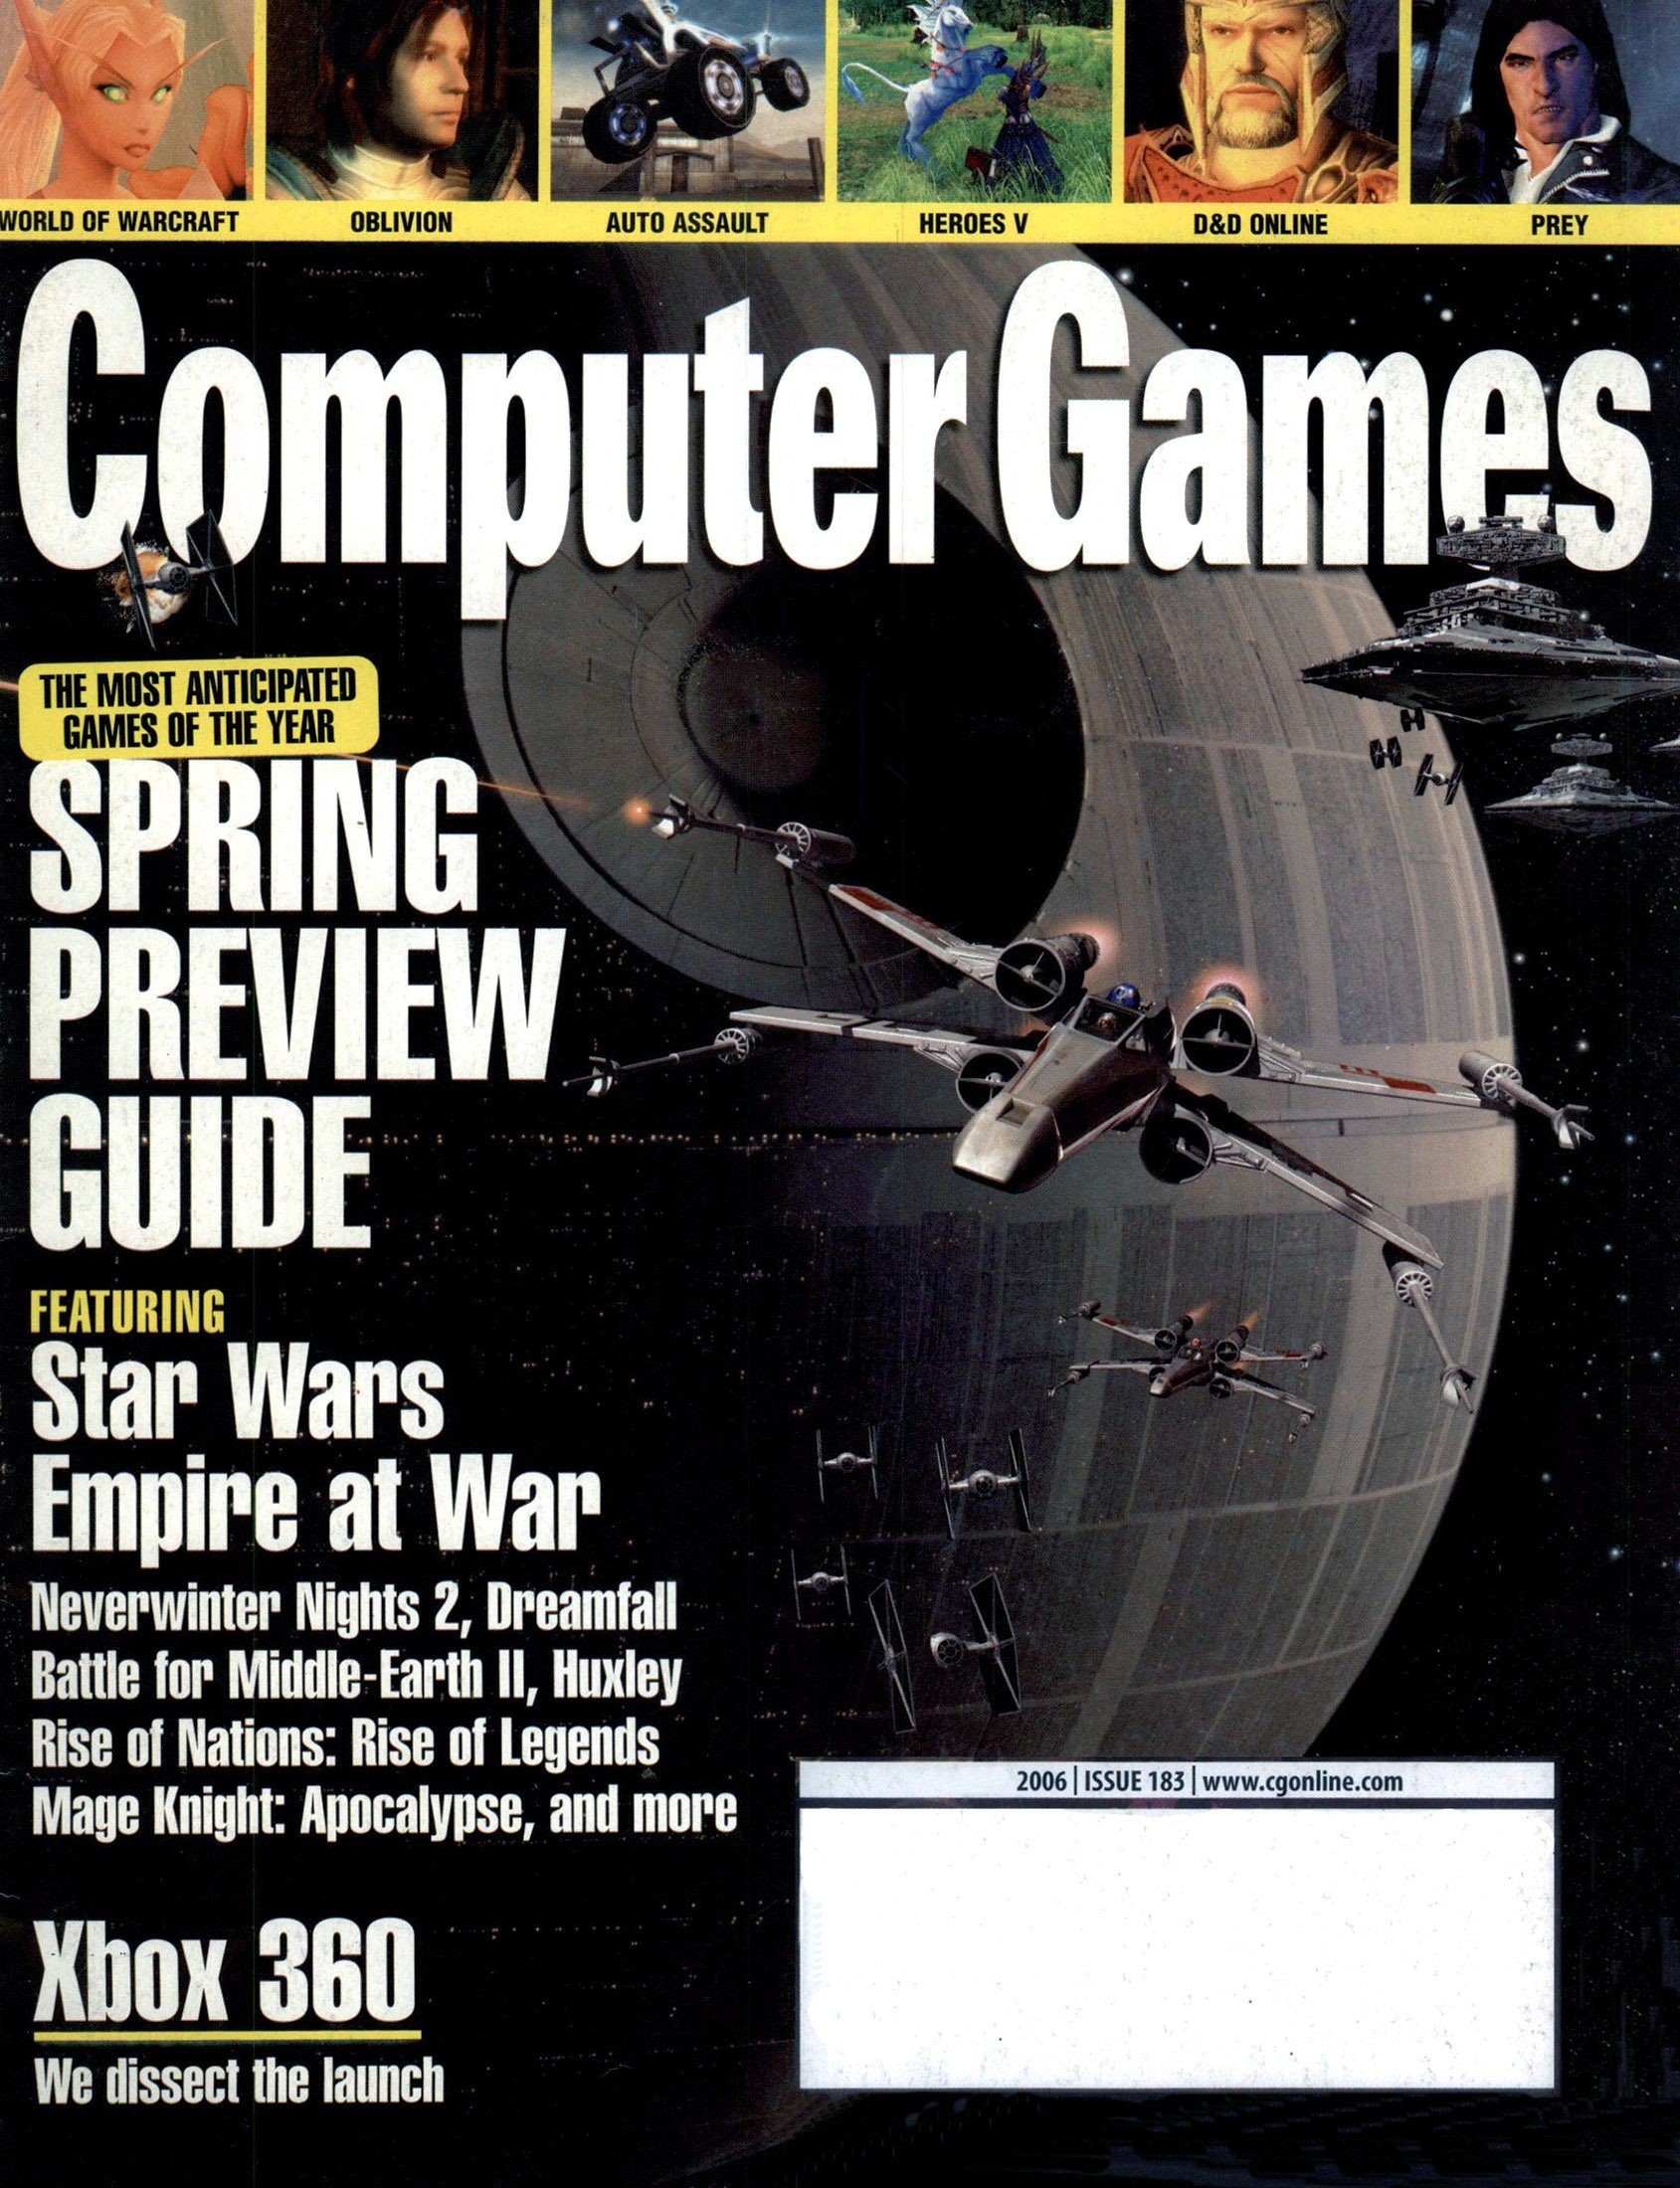 Computer Games Issue 183 (February 2006)